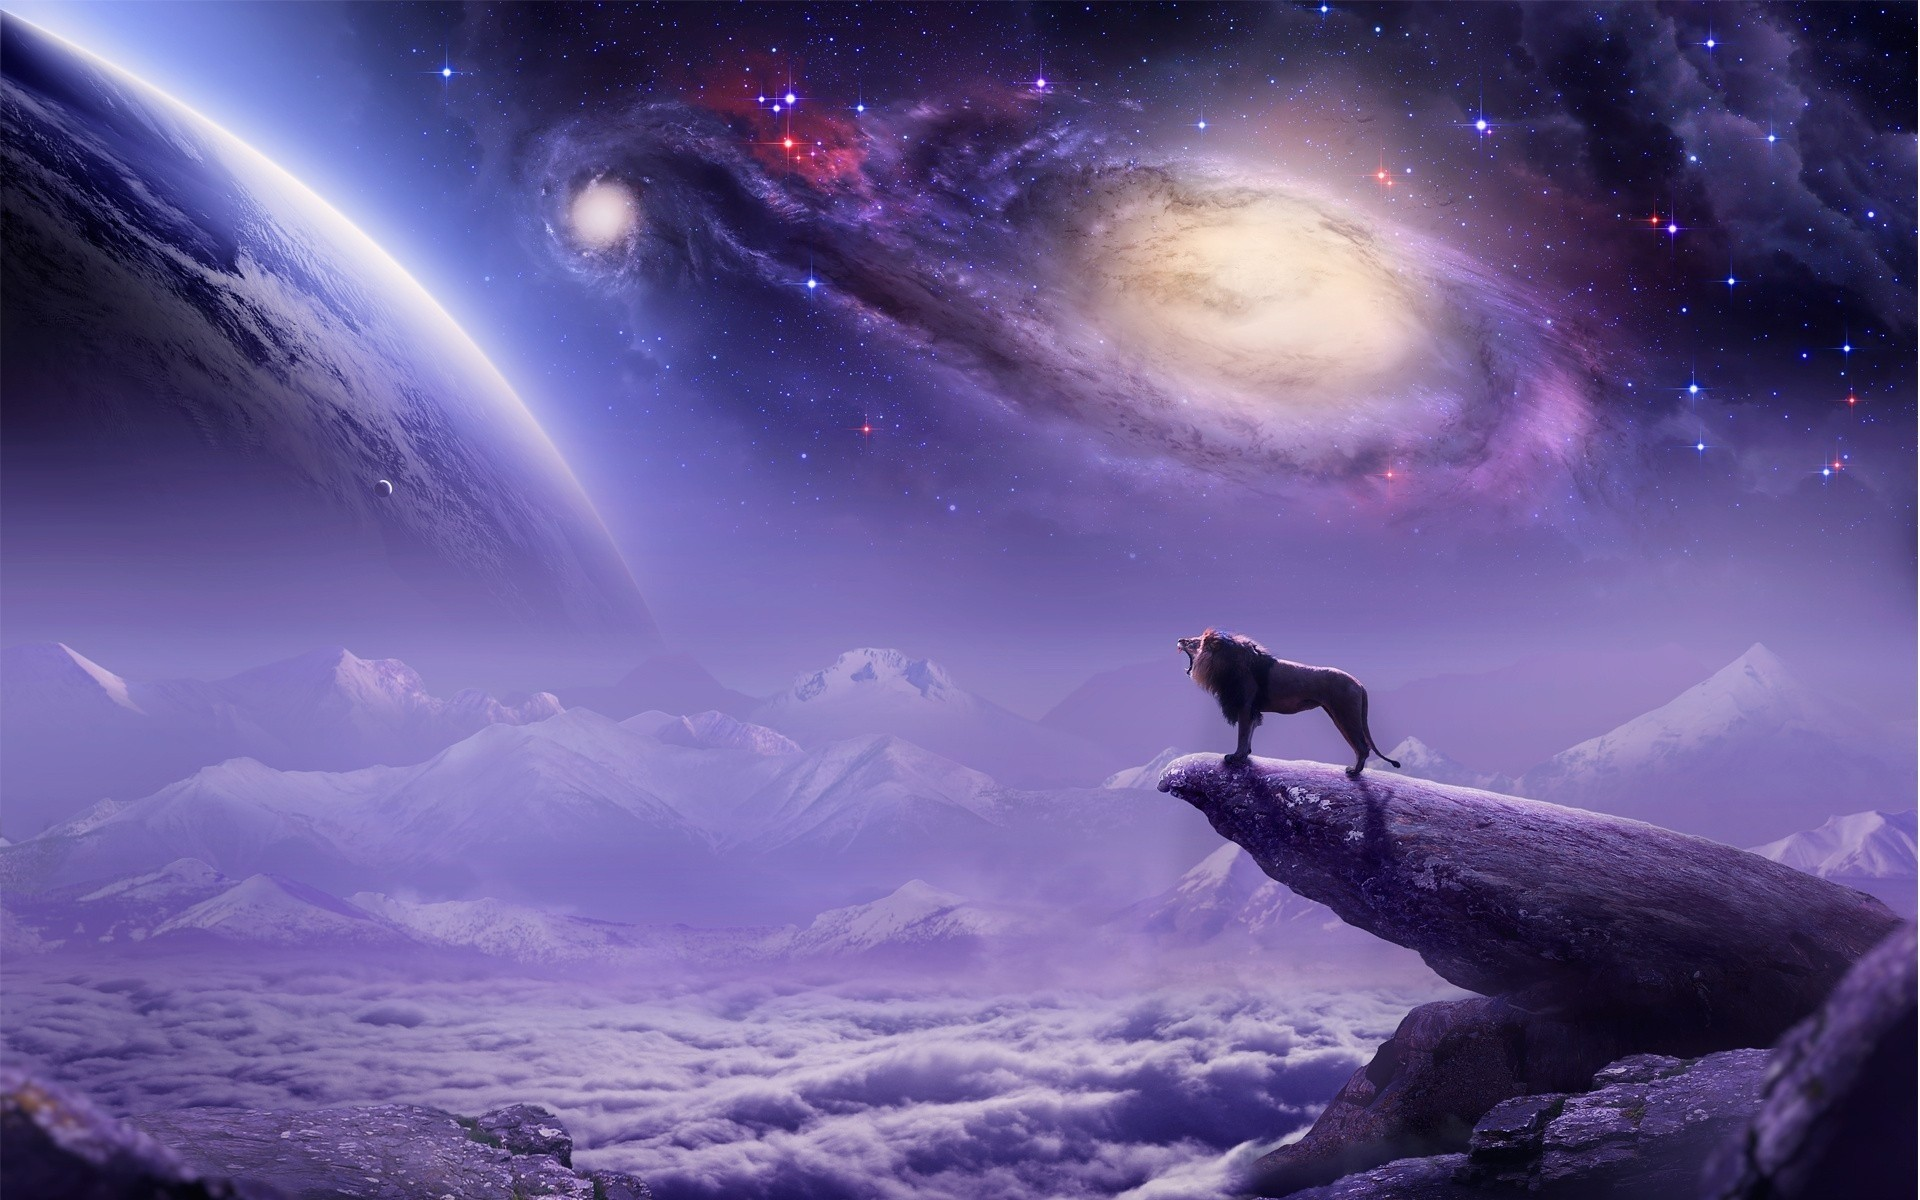 paintings airbrush cg digital art lion landscapes fantasy mountains clouds  dream king sci fi sky stars